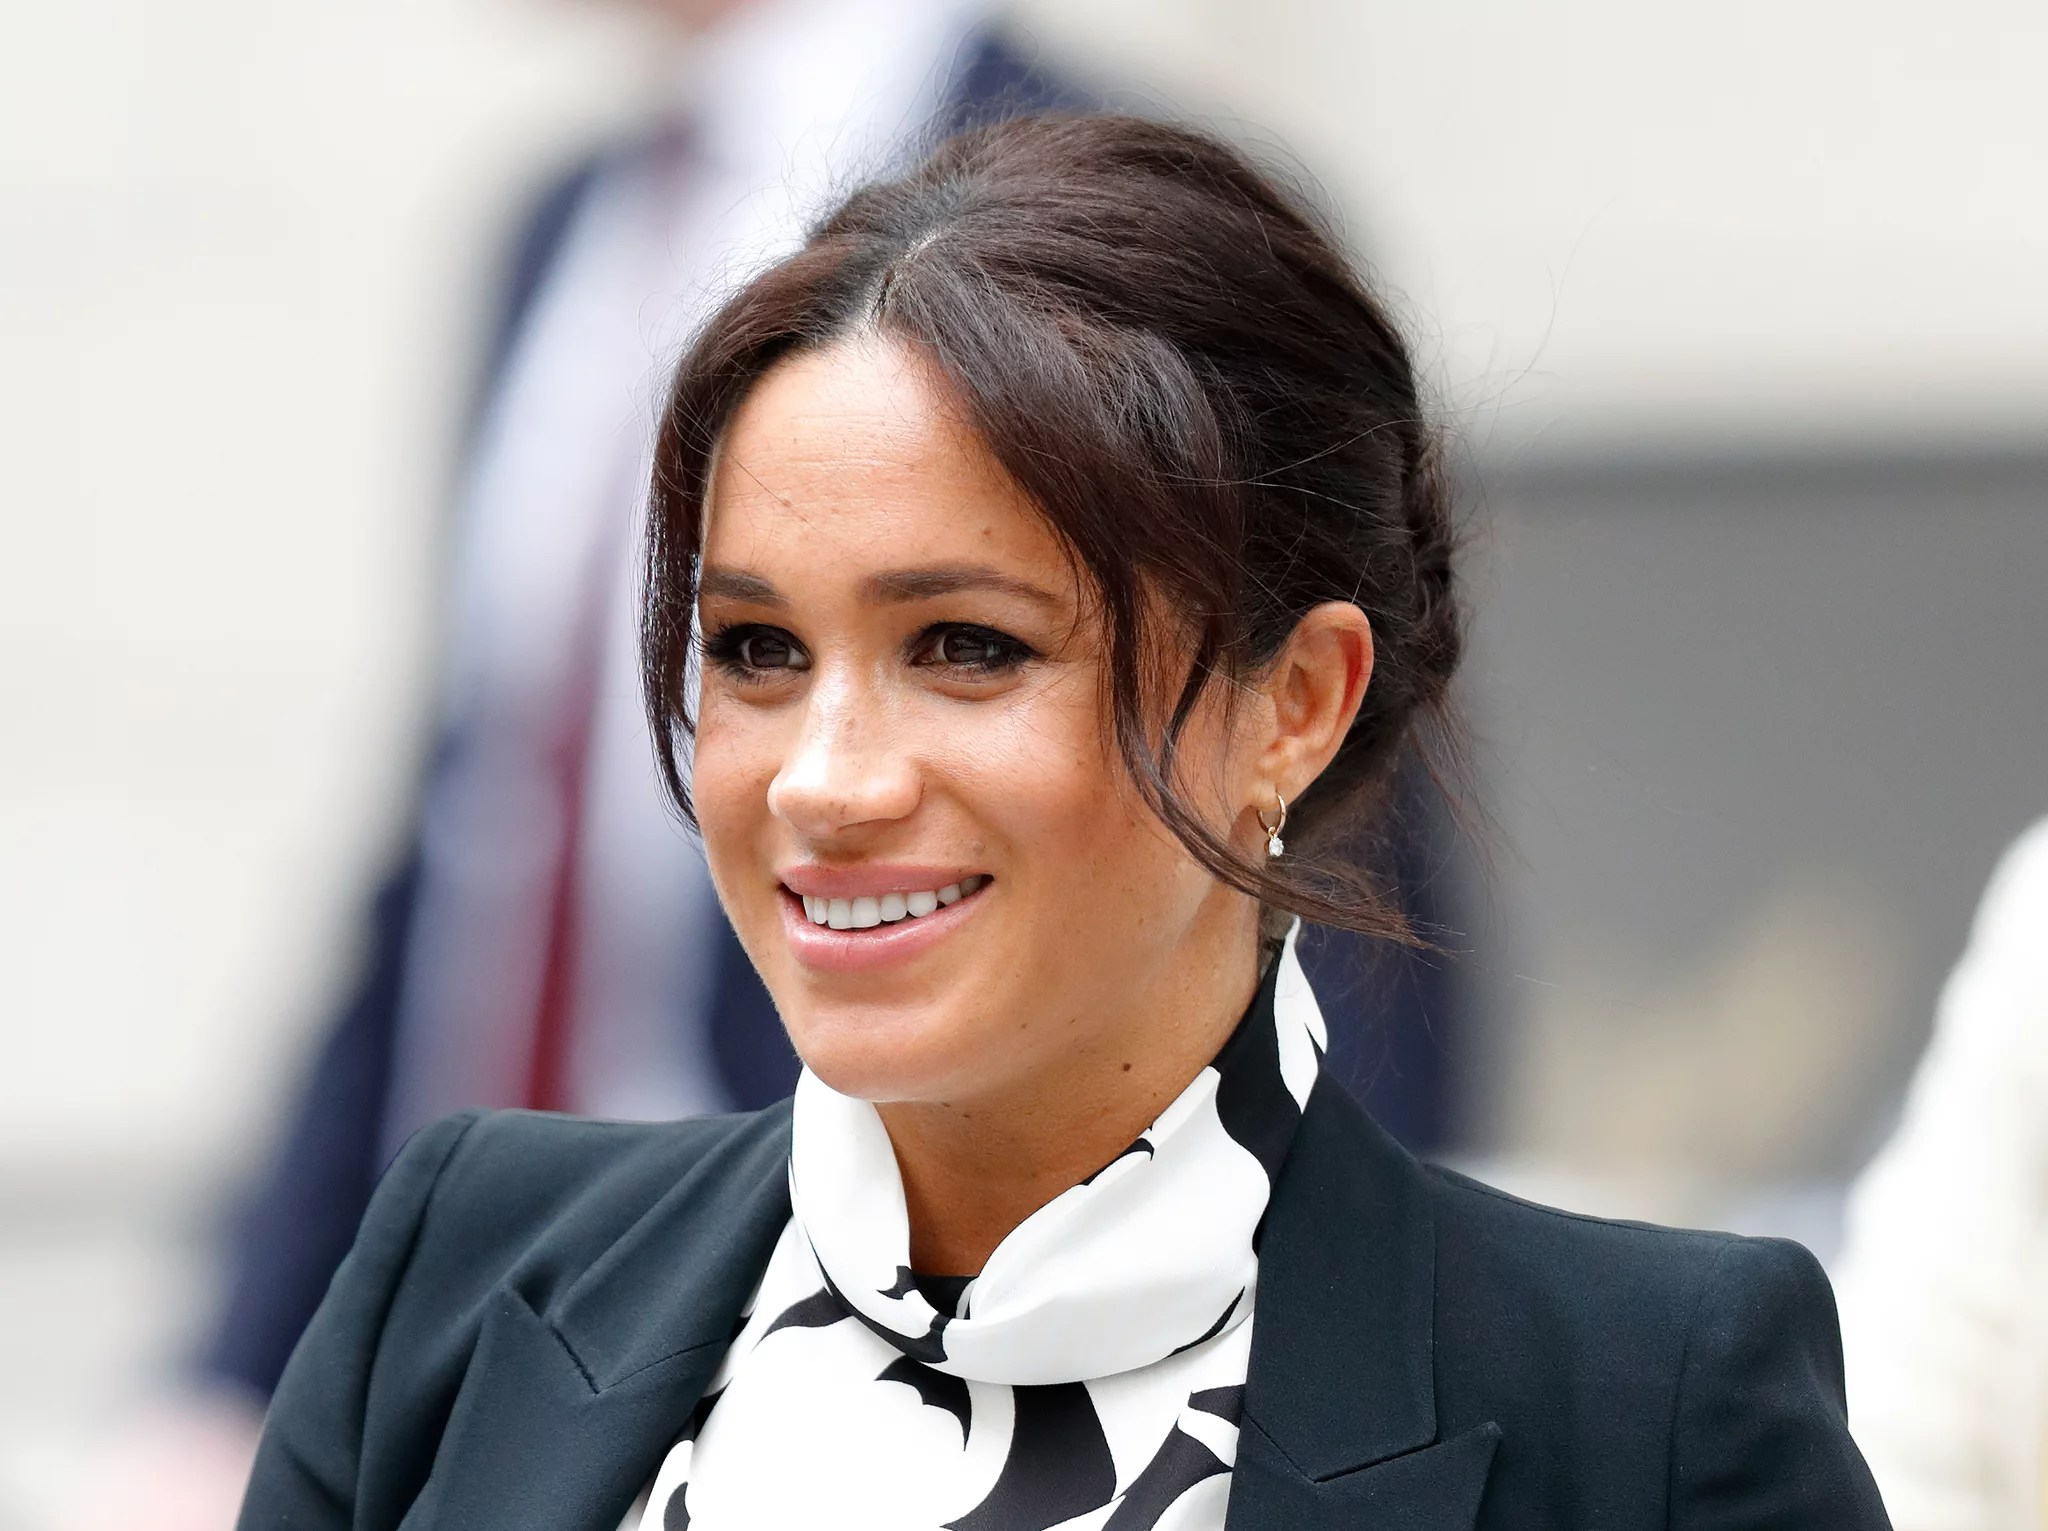 LONDON, UNITED KINGDOM - MARCH 08: (EMBARGOED FOR PUBLICATION IN UK NEWSPAPERS UNTIL 24 HOURS AFTER CREATE DATE AND TIME) Meghan, Duchess of Sussex attends a panel discussion, convened by The Queen's Commonwealth Trust, to mark International Women's Day at King's College London on March 8, 2019 in London, England. It was announced today that The Duchess of Sussex has become Vice-President of The Queen's Commonwealth Trust, of which The Queen is Patron and The Duke of Sussex is President. (Photo by Max Mumby/Indigo/Getty Images)